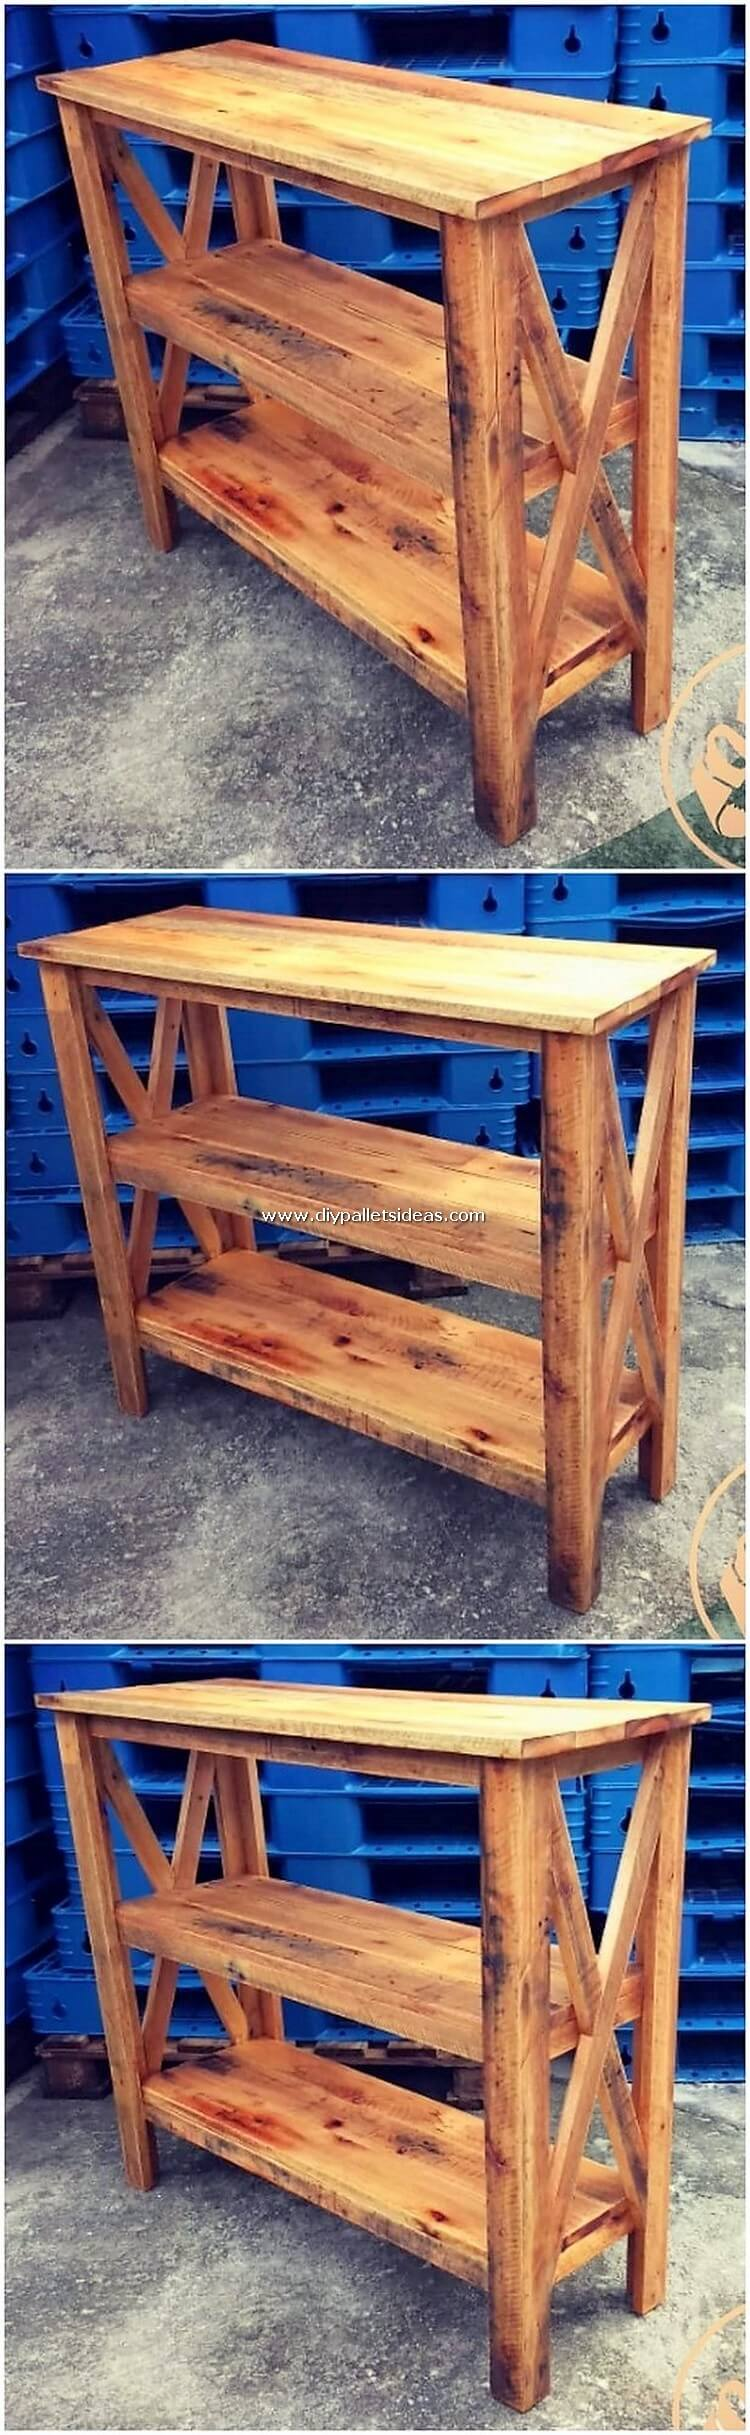 Wood Pallet Shelving Table